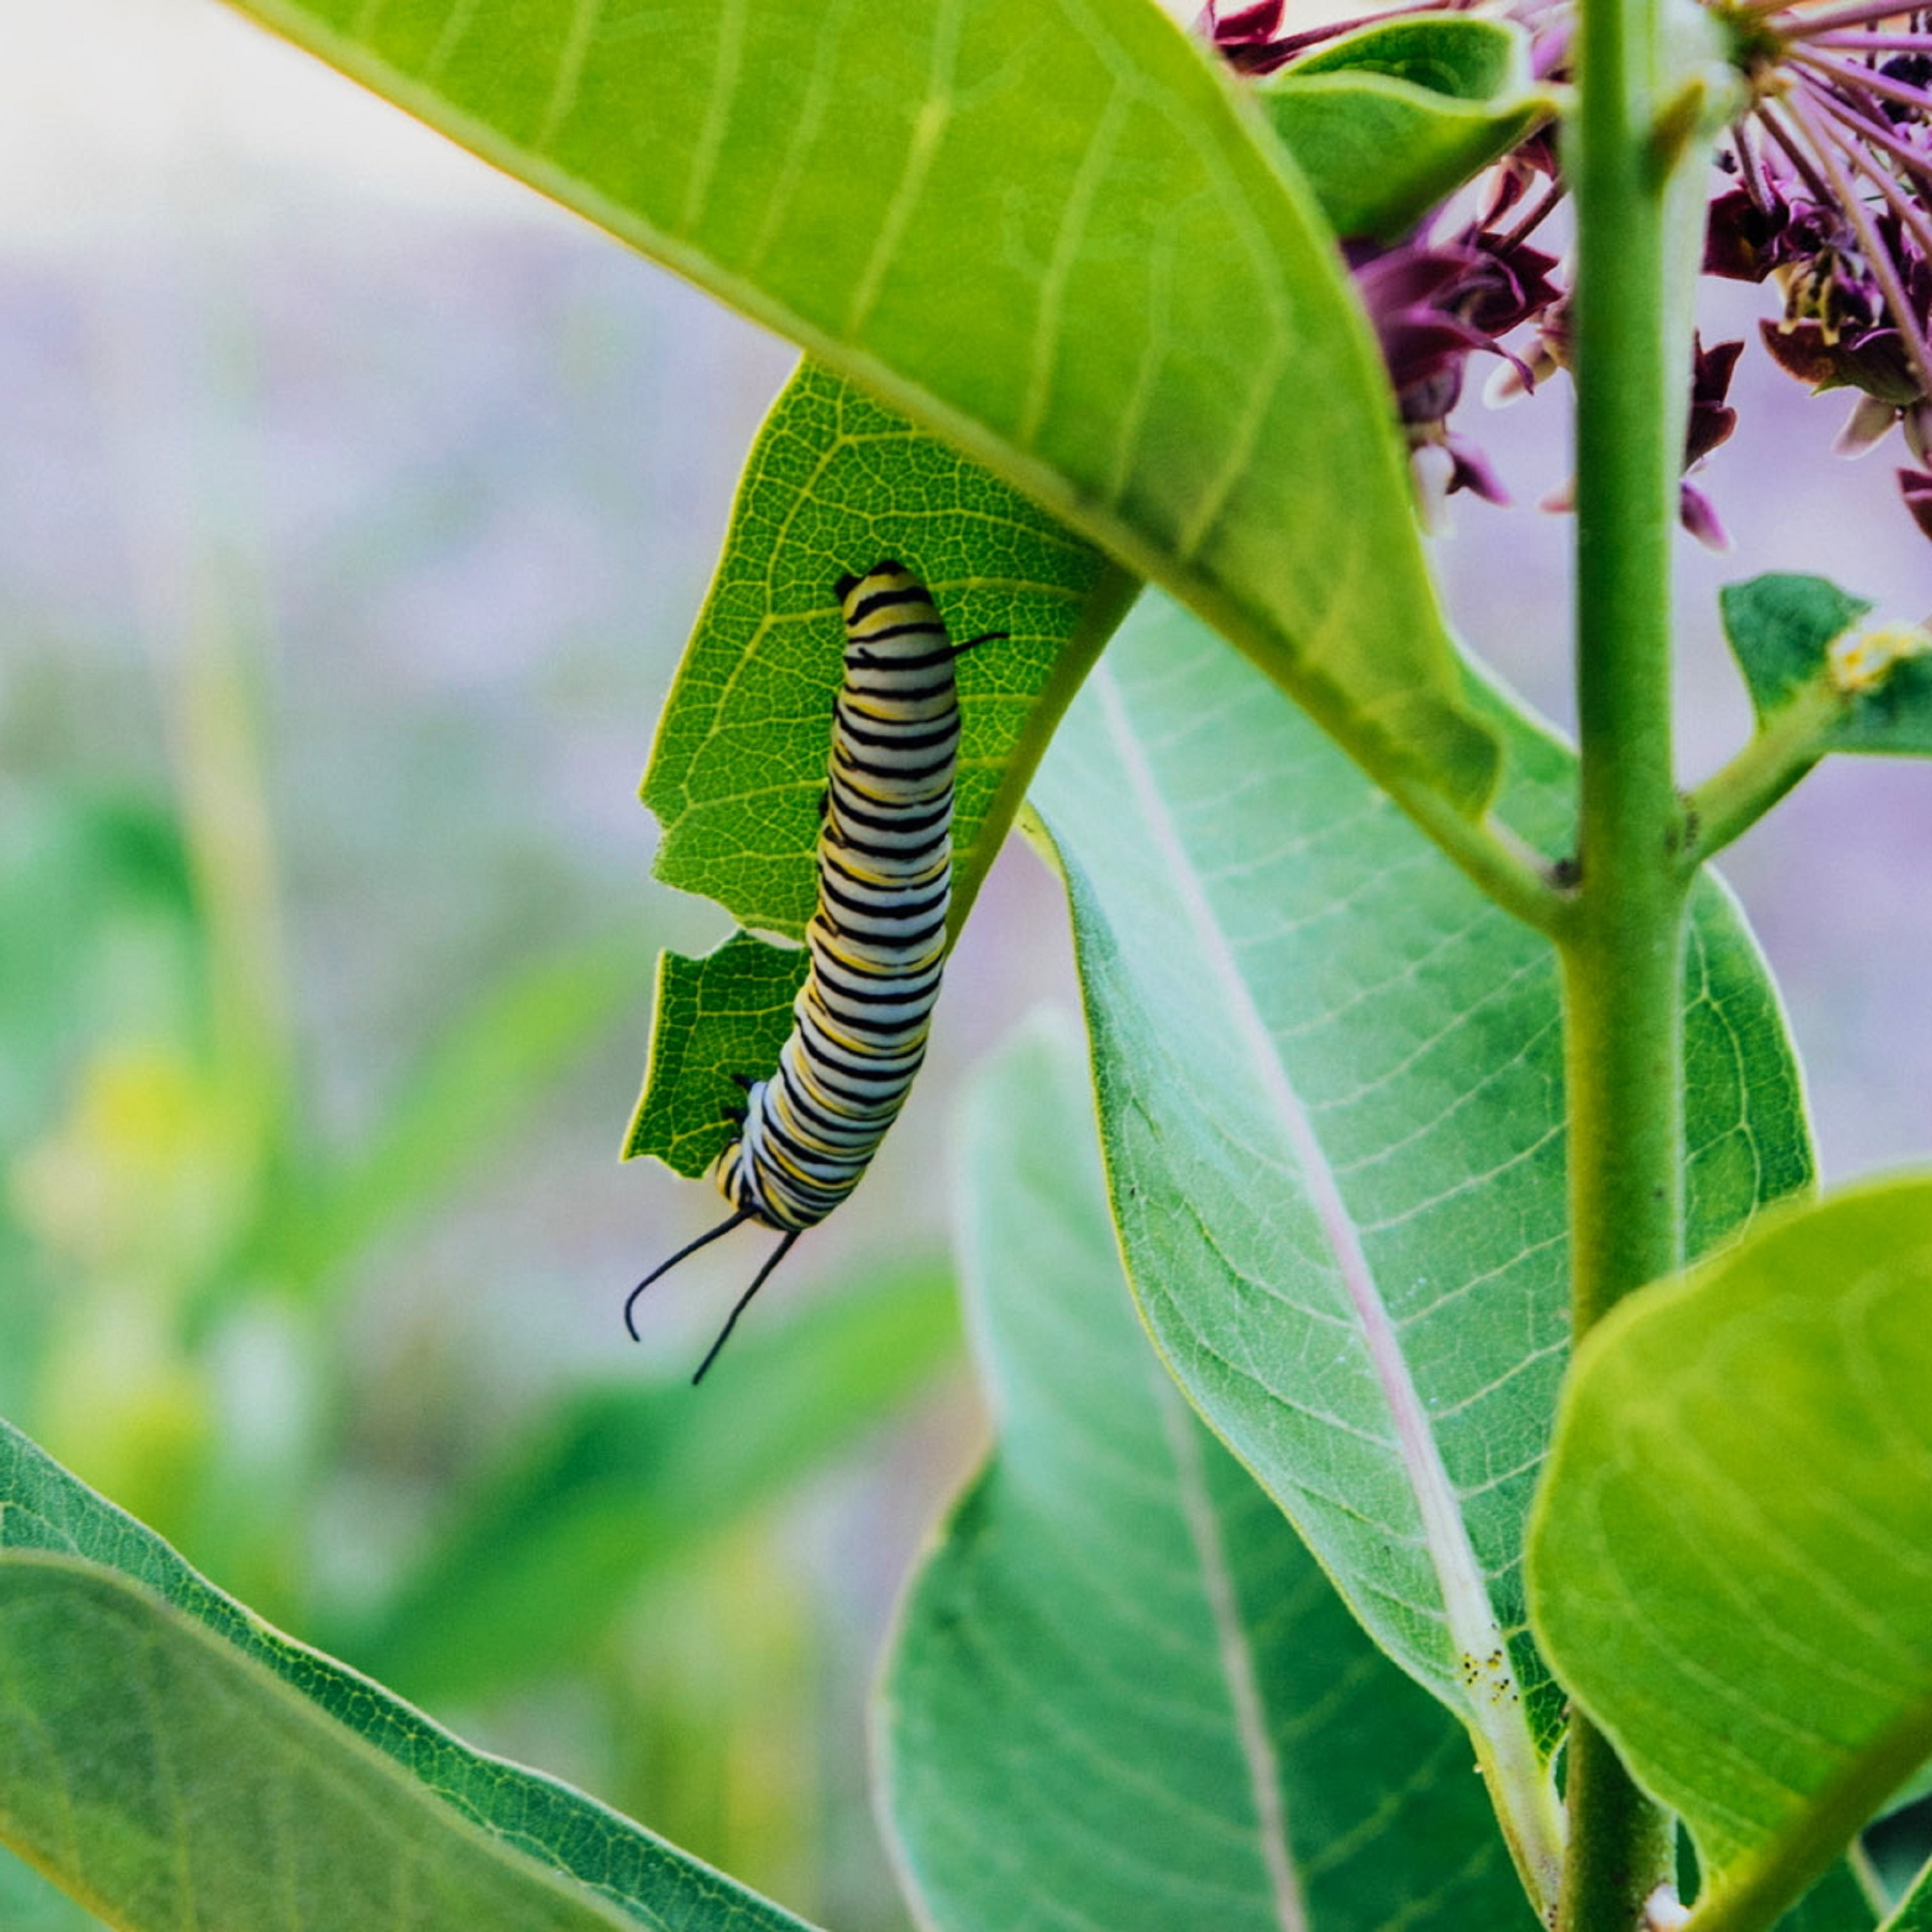 monarch caterpillar on green leaf in closeup photo